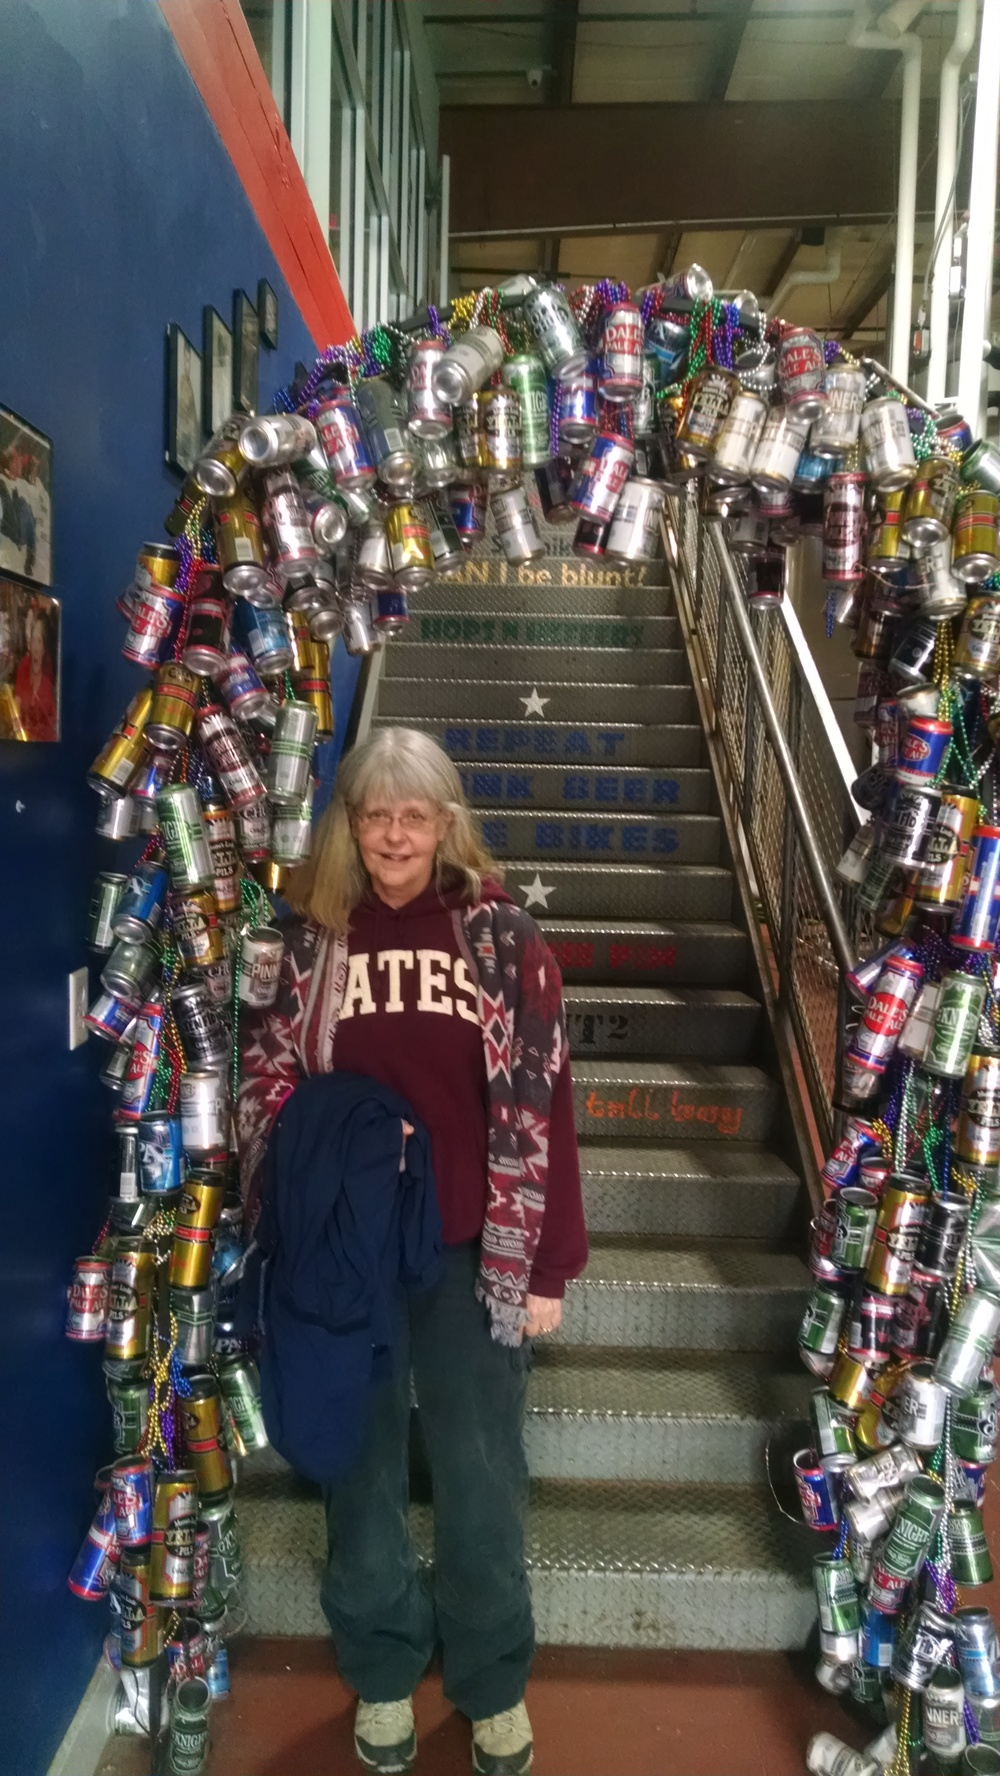 Susan surrounded by empties (not hers!) at Oskar Blues in Brevard